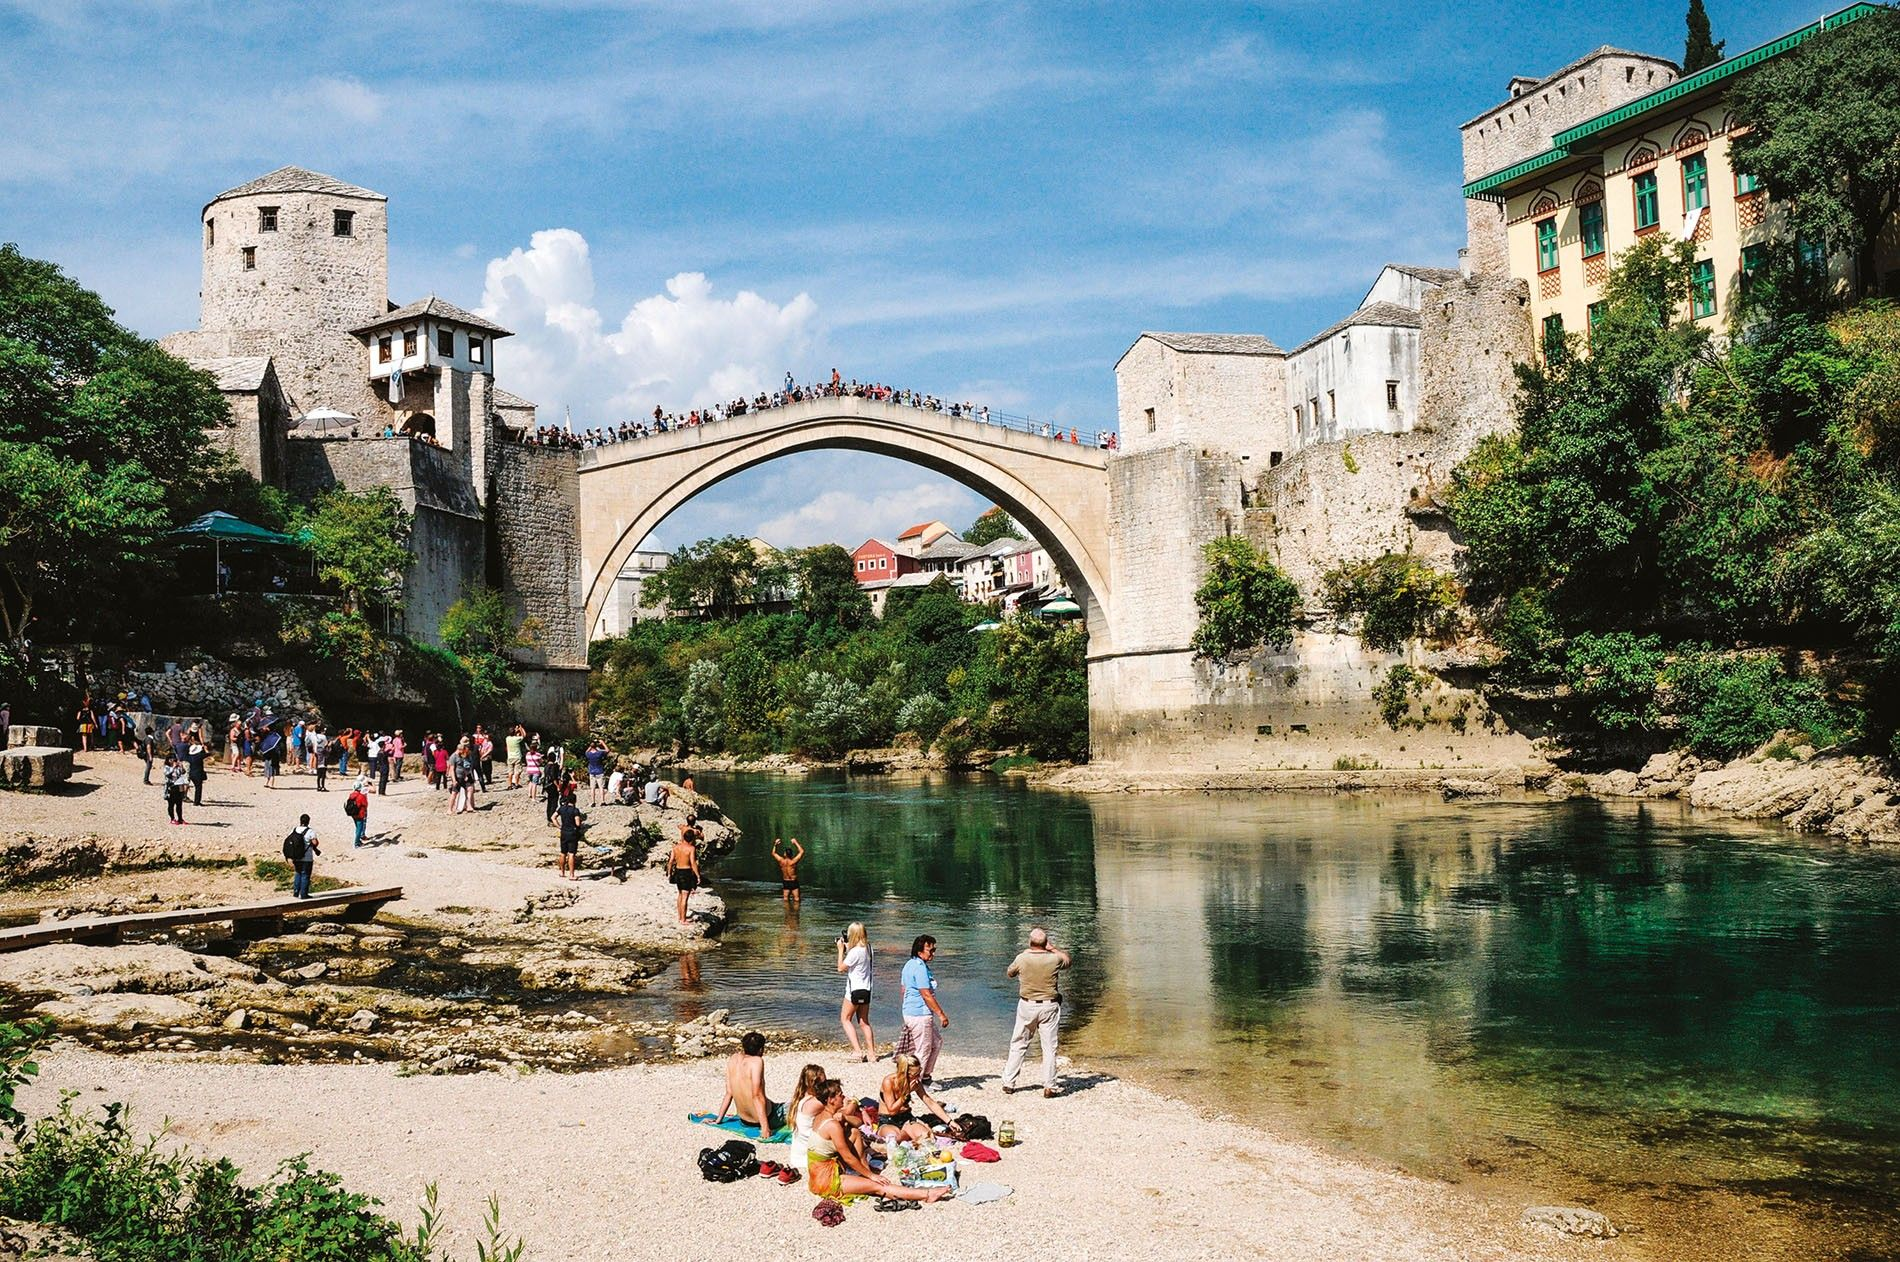 A replica of the 16th-century Star Most (Old Bridge) spans the Neretva River in Mostar